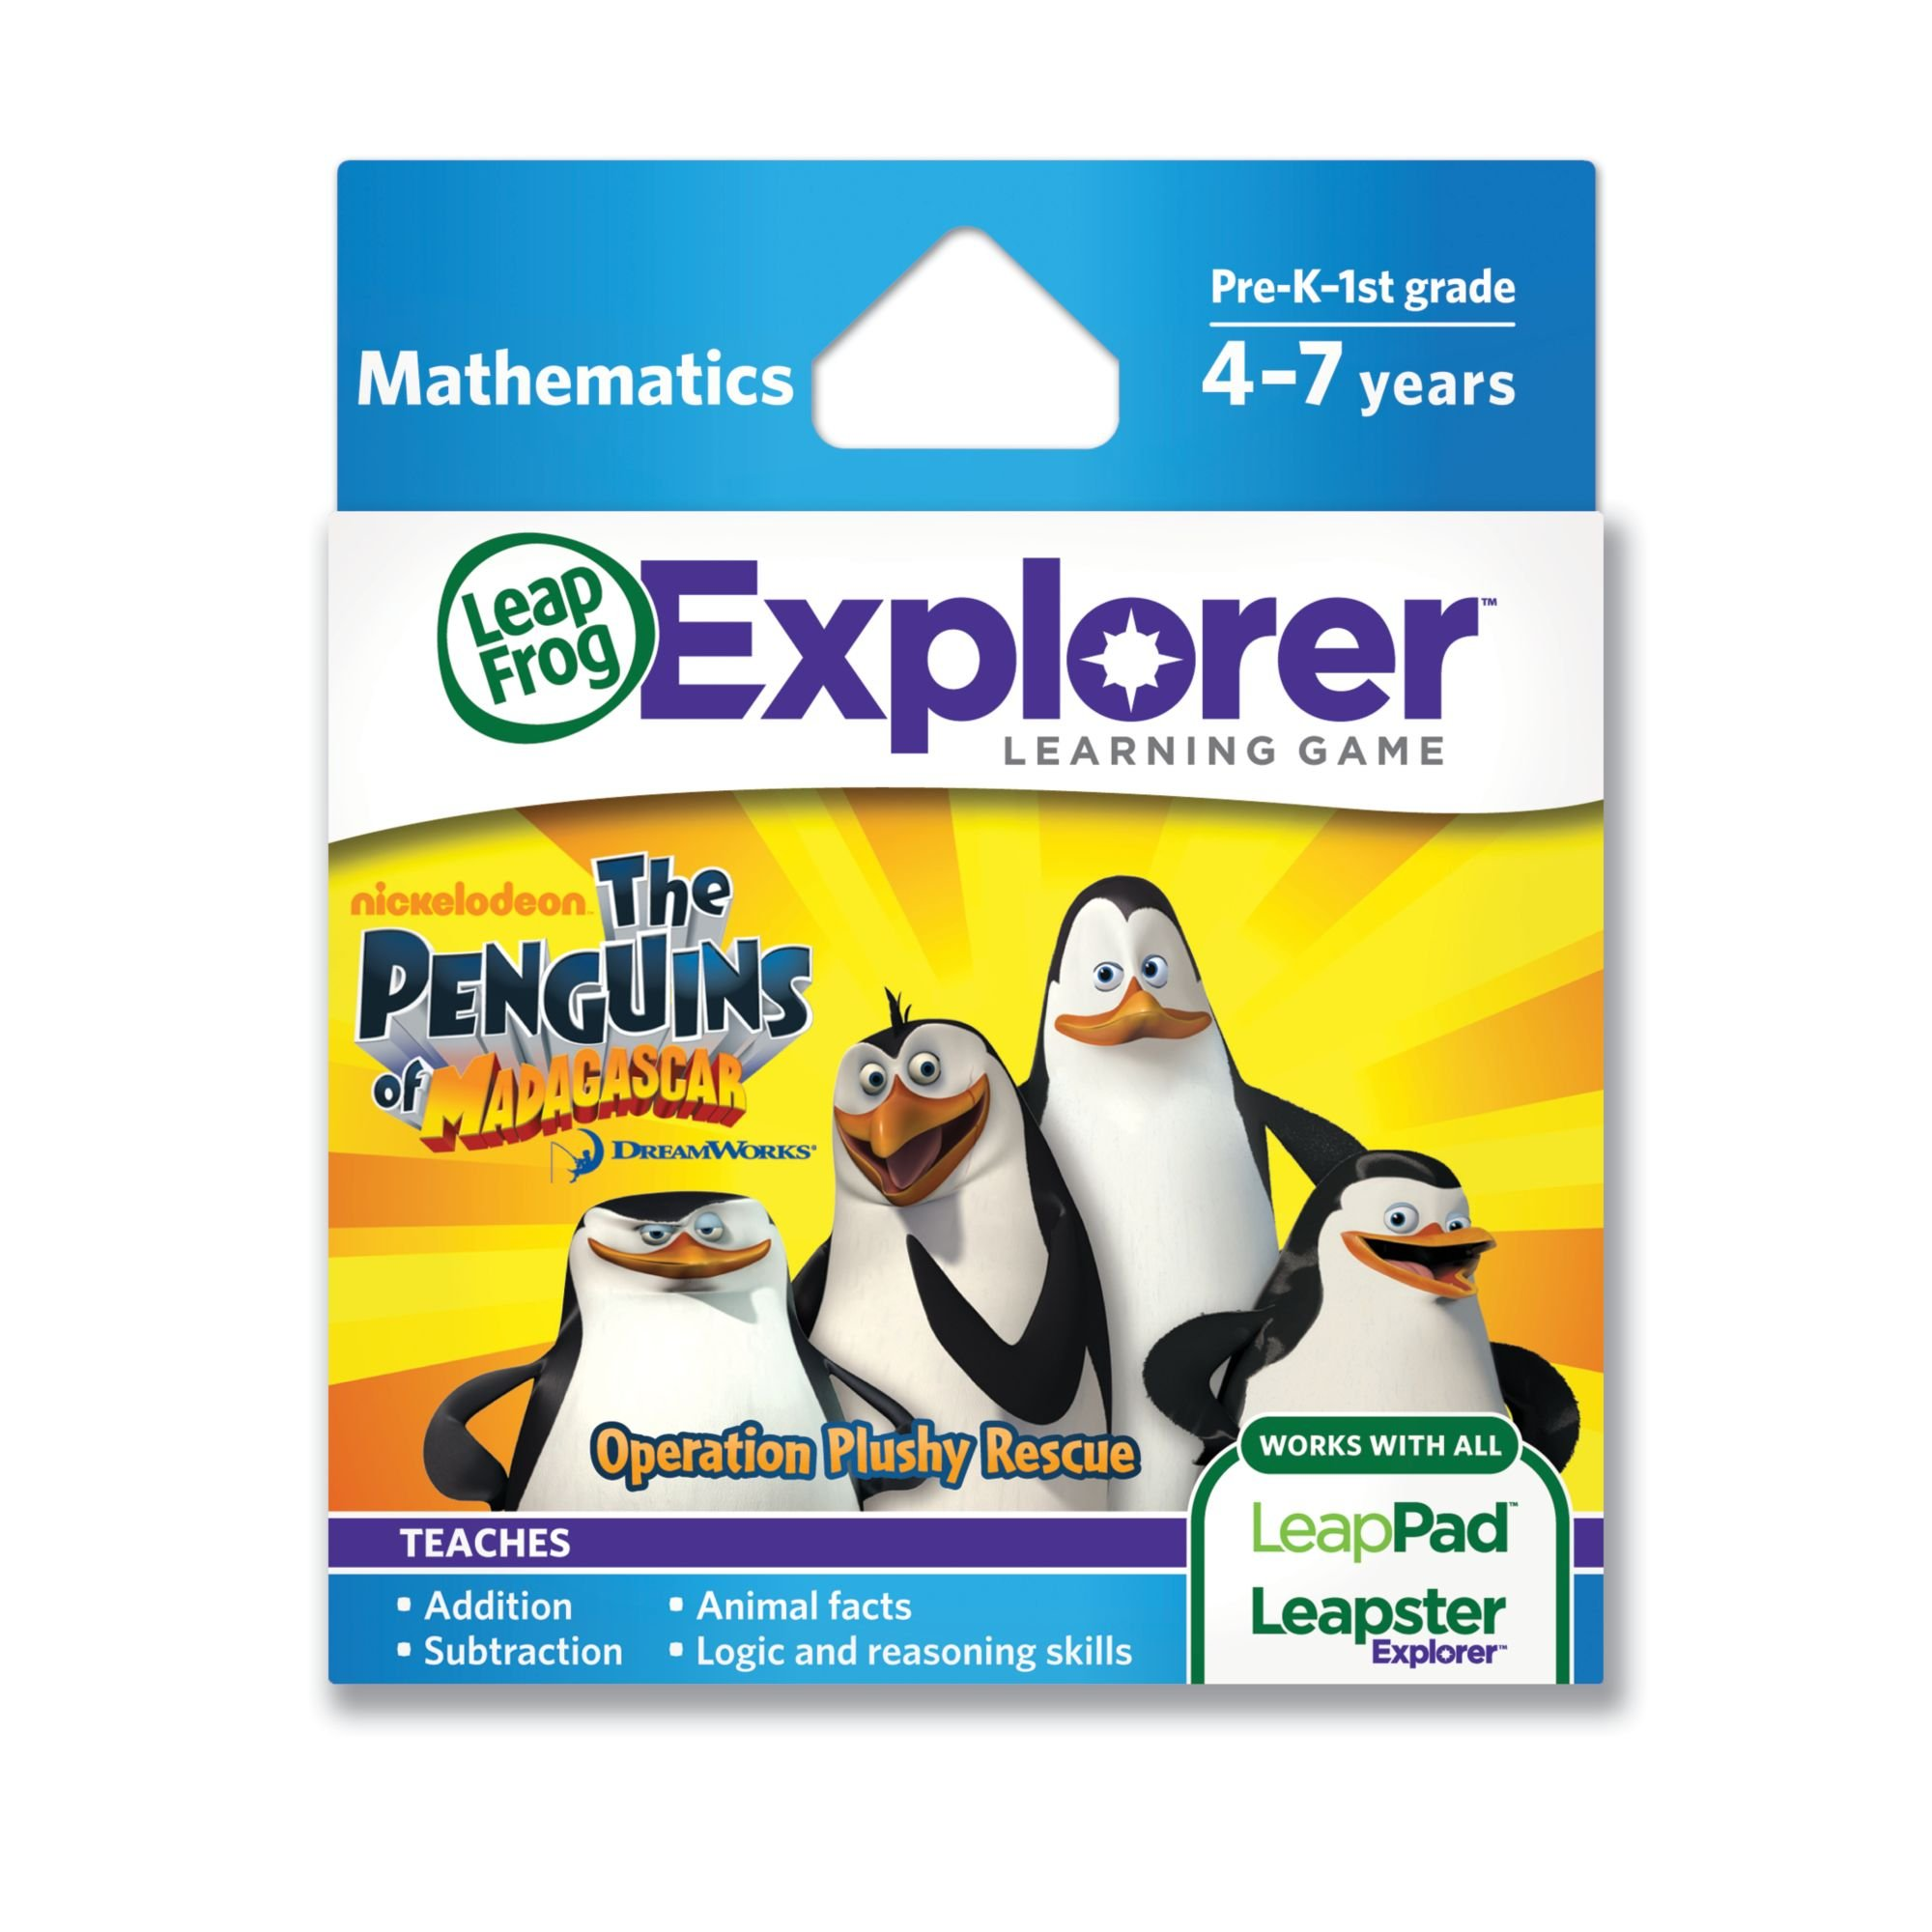 LeapFrogThe Penguins of Madagascar: Operation Plushy Rescue Learning Game (works with LeapPad Tablets and LeapsterGS) by LeapFrog (Image #1)